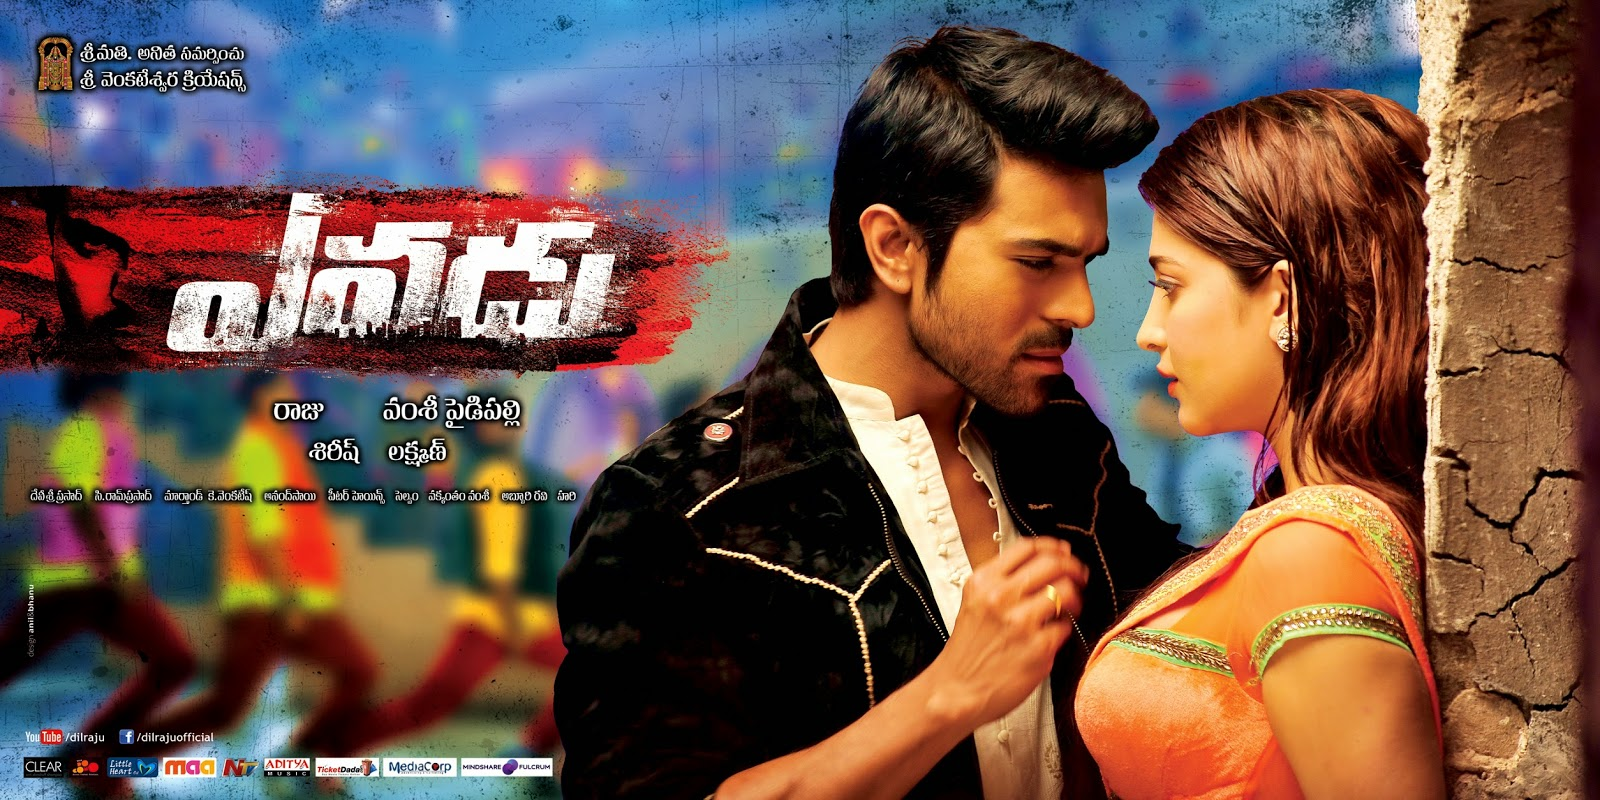 Yevadu 2014 Telugu Full Movie Blyray Watch Online